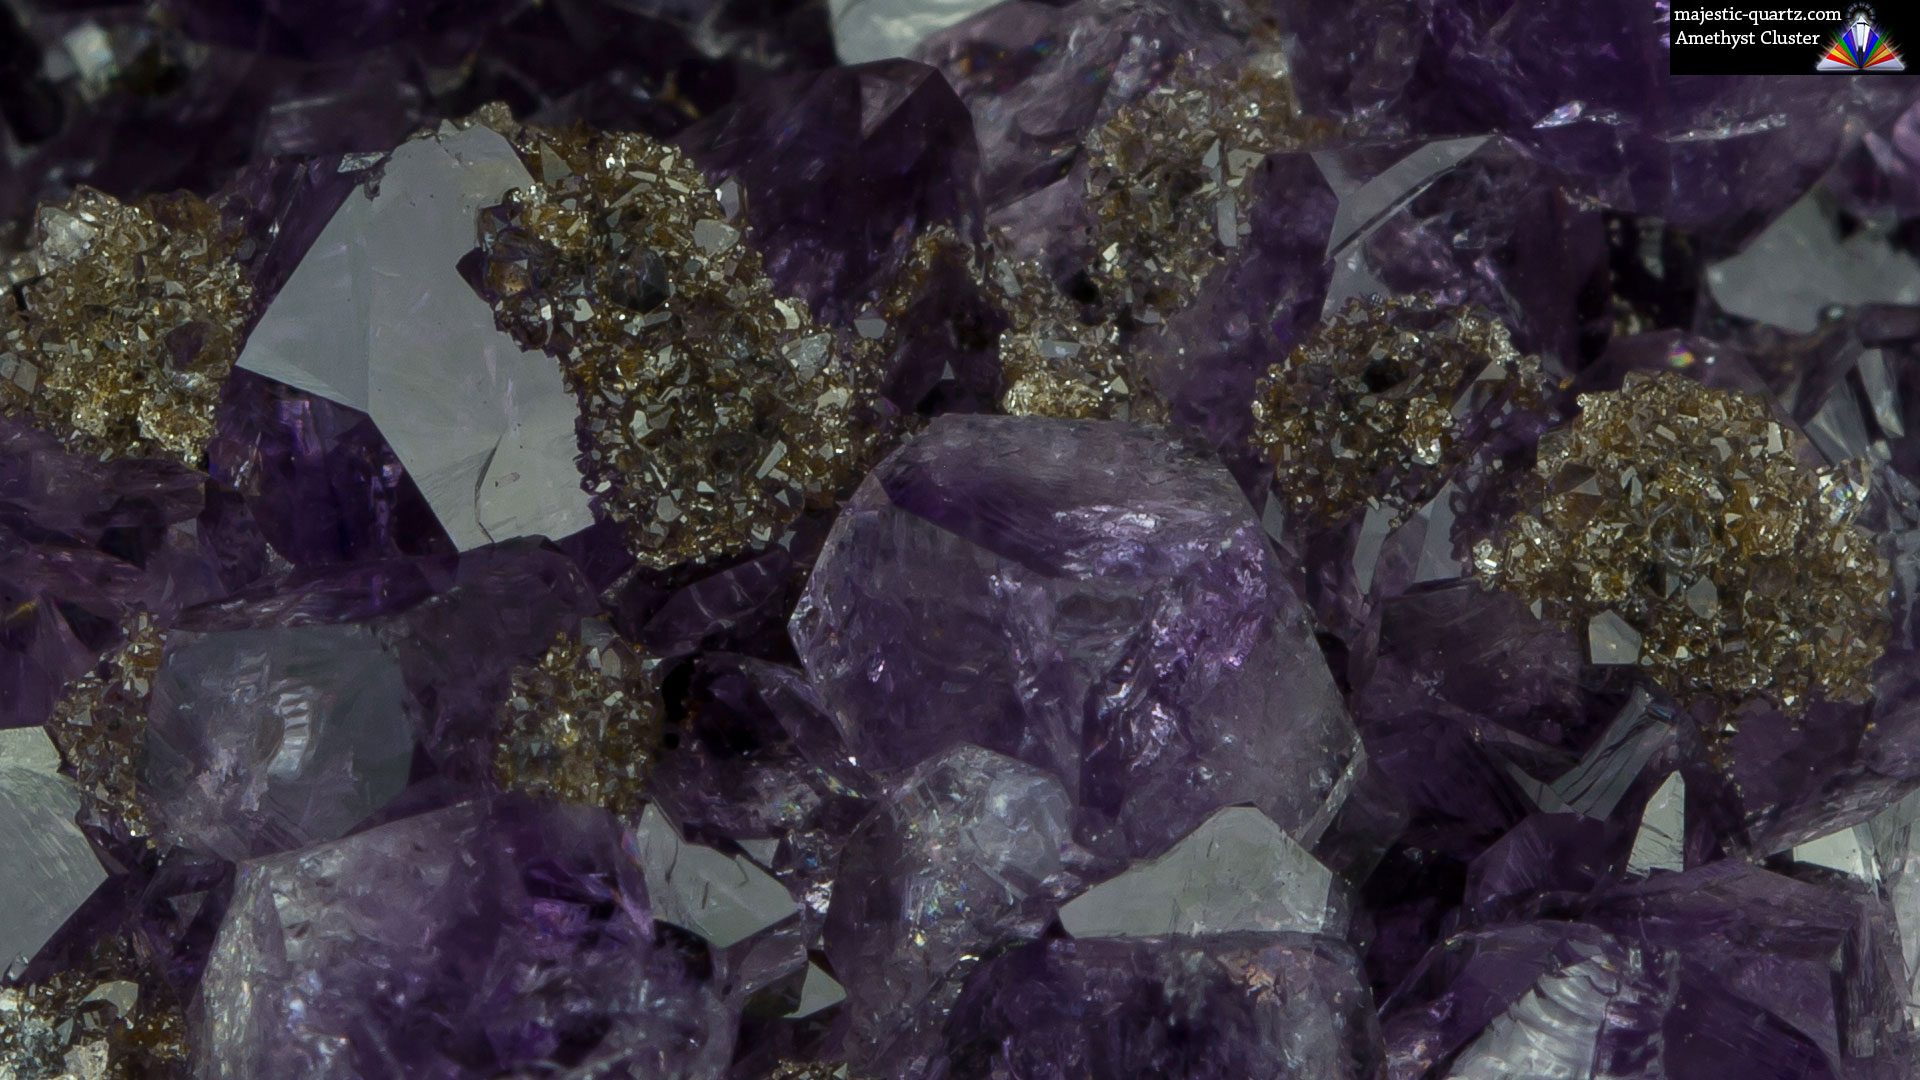 Amethyst Cluster With Goethite Specimen - Photograph by Anthony Bradford